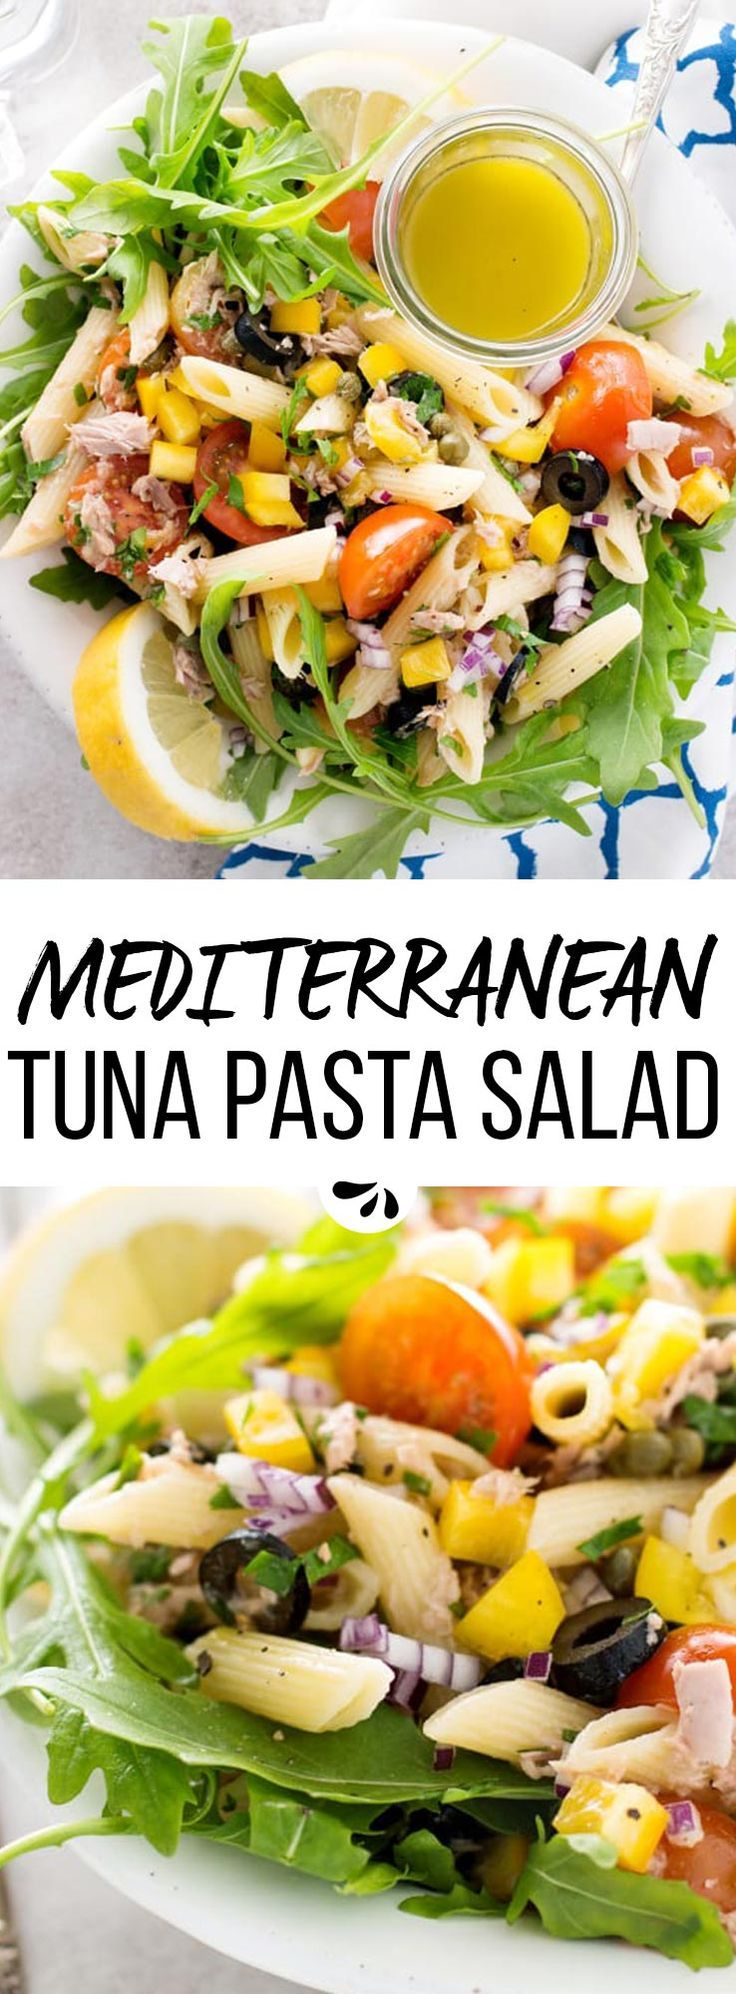 This healthy veggie loaded Mediterranean Tuna Pasta Salad is the perfect cold side dish for summer BBQ parties! Quick and to make without any mayo, simple ingredients and the best flavors. Great to make ahead so you can easily bring it to potlucks, barbecues or Memorial Day, Fourth of July and Labor Day parties. Let the kids help, so you can have some fun in the kitchen together! via @savorynothings